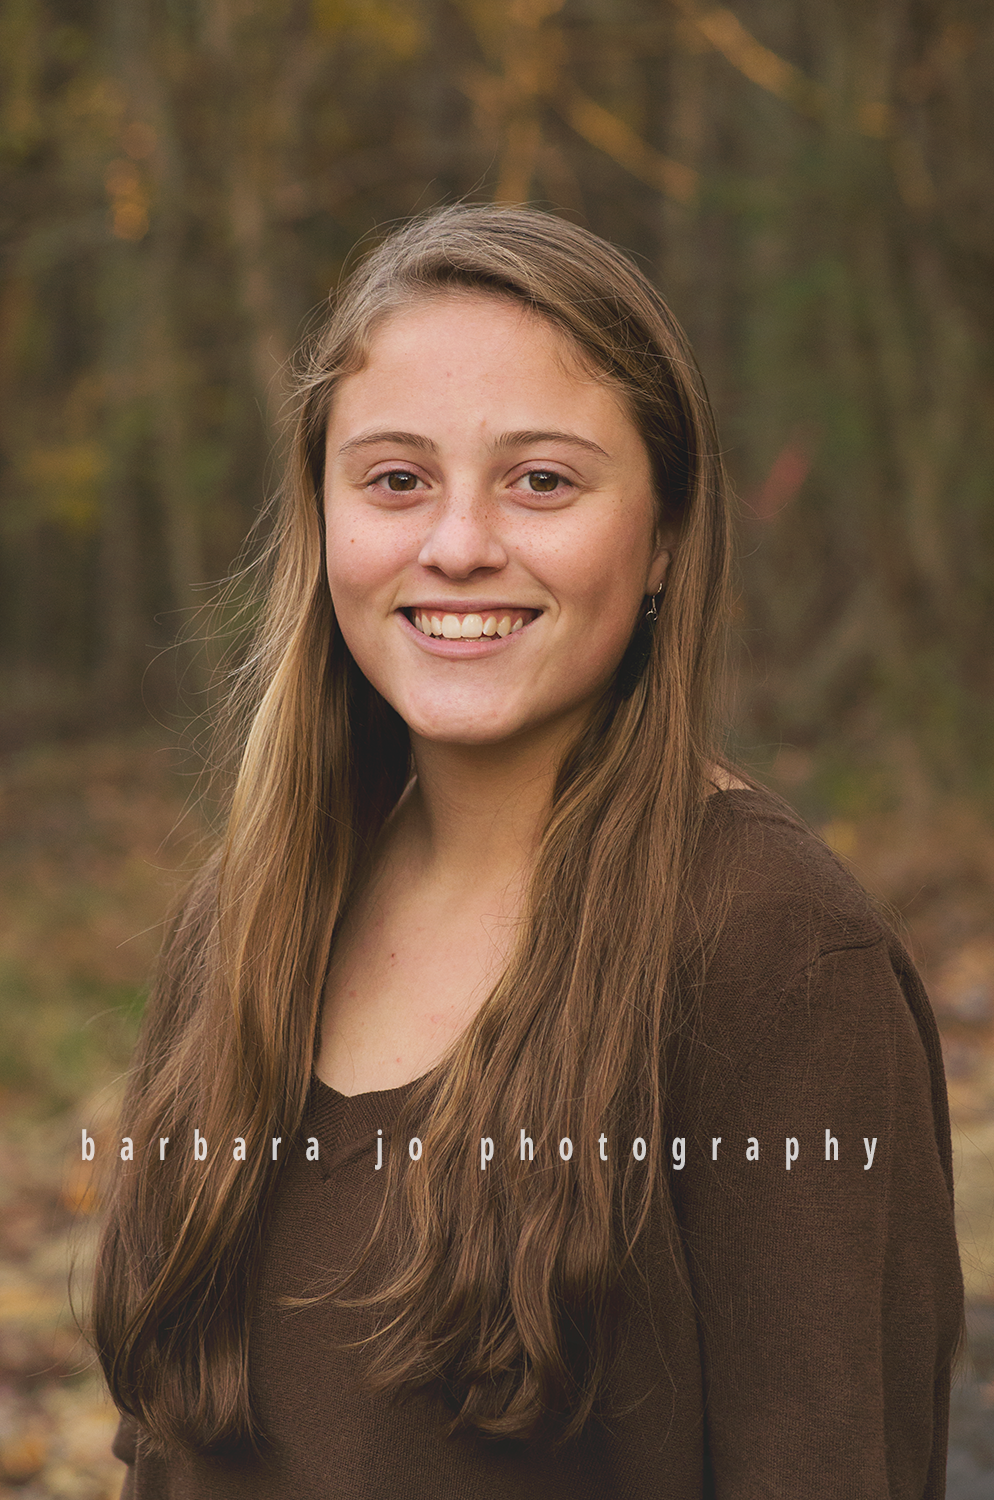 bjp-senior-pictures-portraits-class-of-2018-dover-oh-fall-autumn-woods-graduate-abby6.png